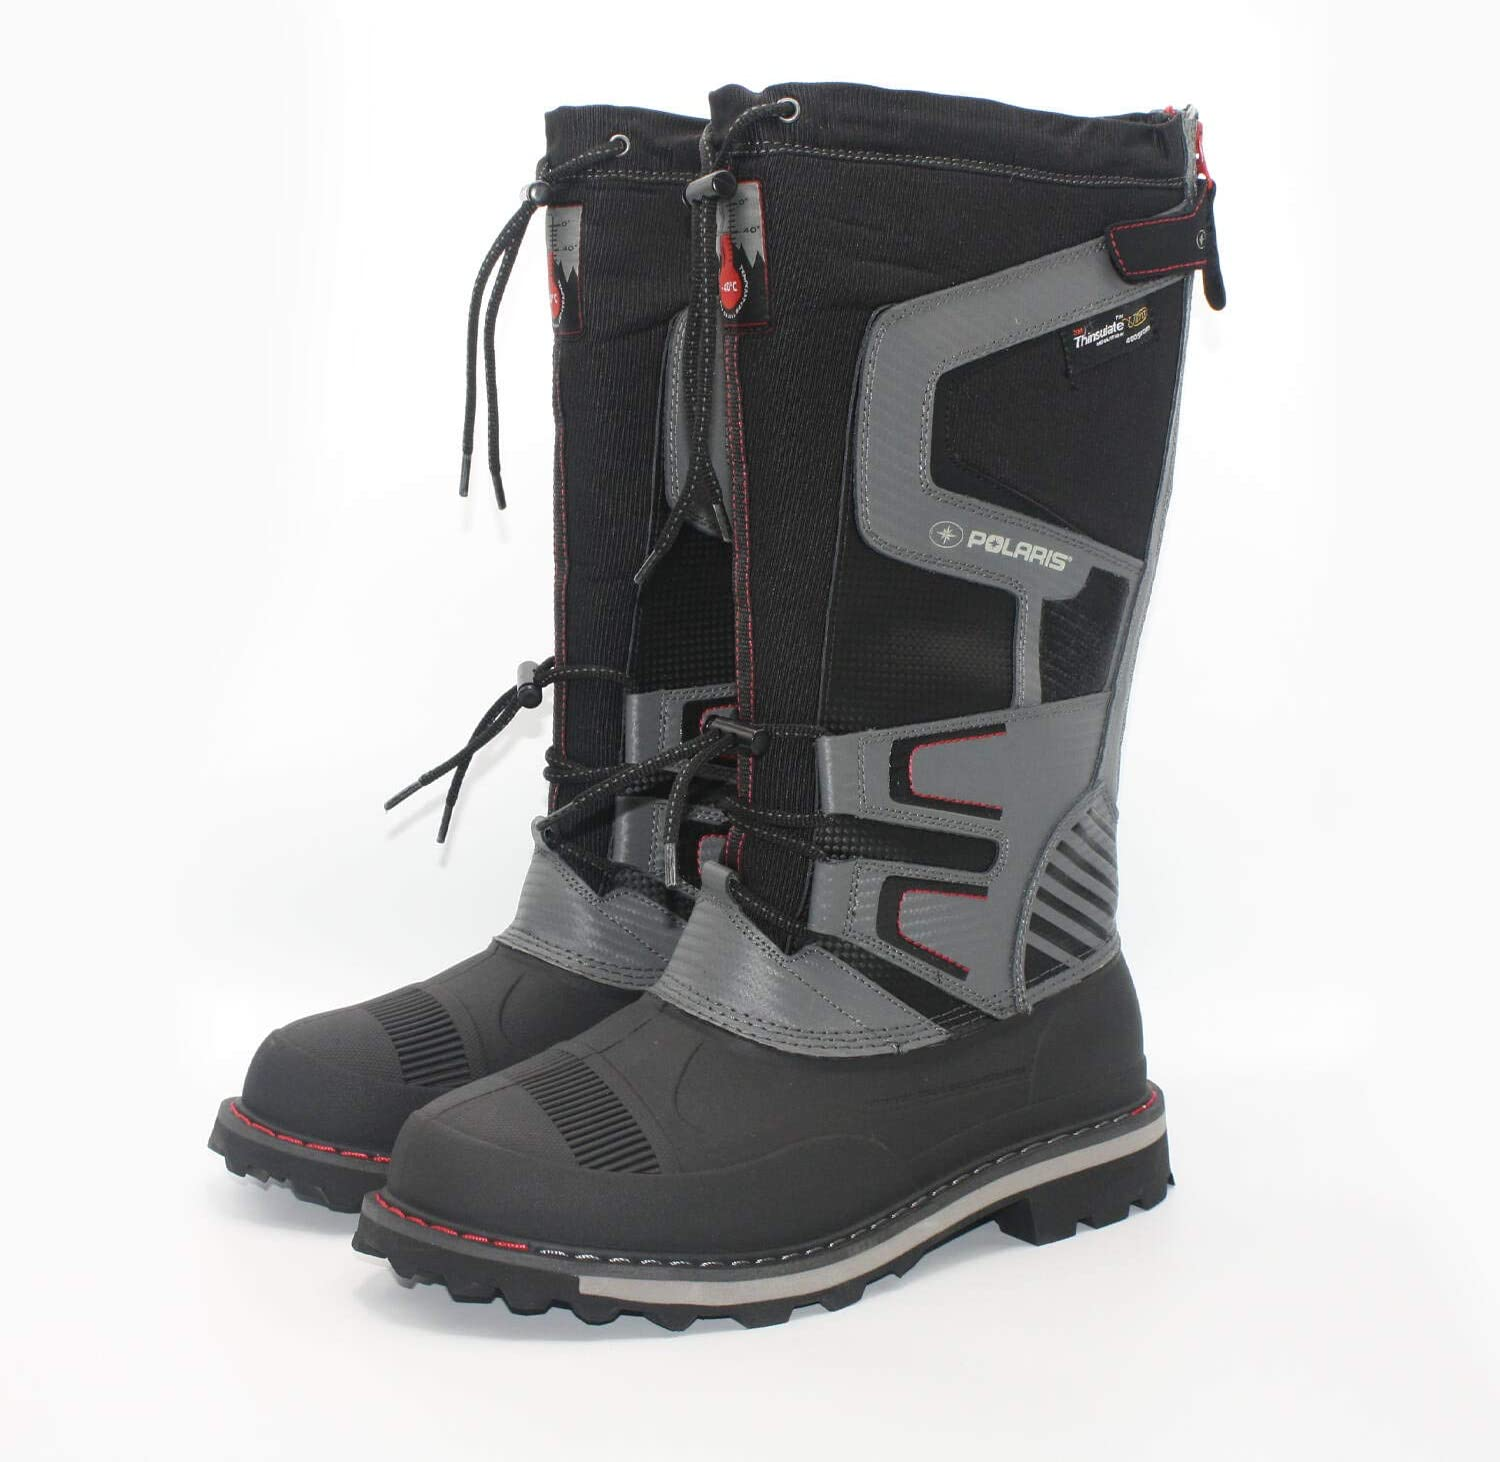 Polaris Mens Snowmobiling Drift Master Boot with 3M Thinsulate Insulation, Black - 11